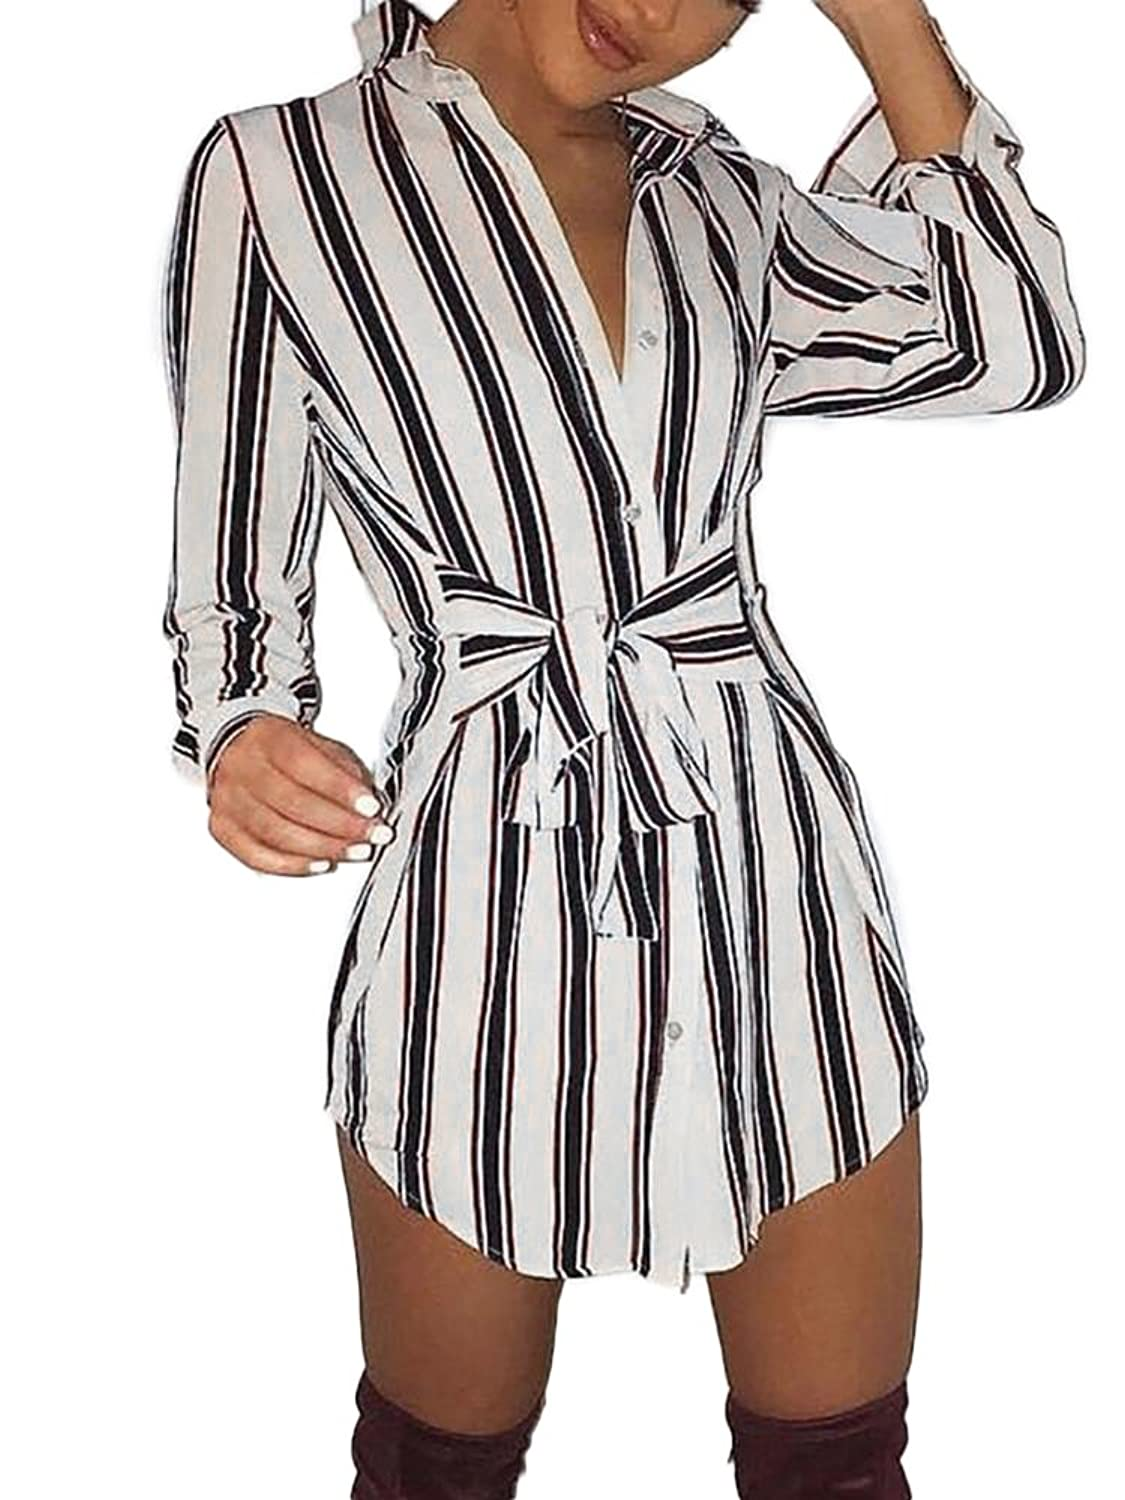 252fb8ee630 Online Cheap wholesale Ninimour Womens Self-Belt Stripe Print Casual Shirt  Blouse Dress Dresses Suppliers